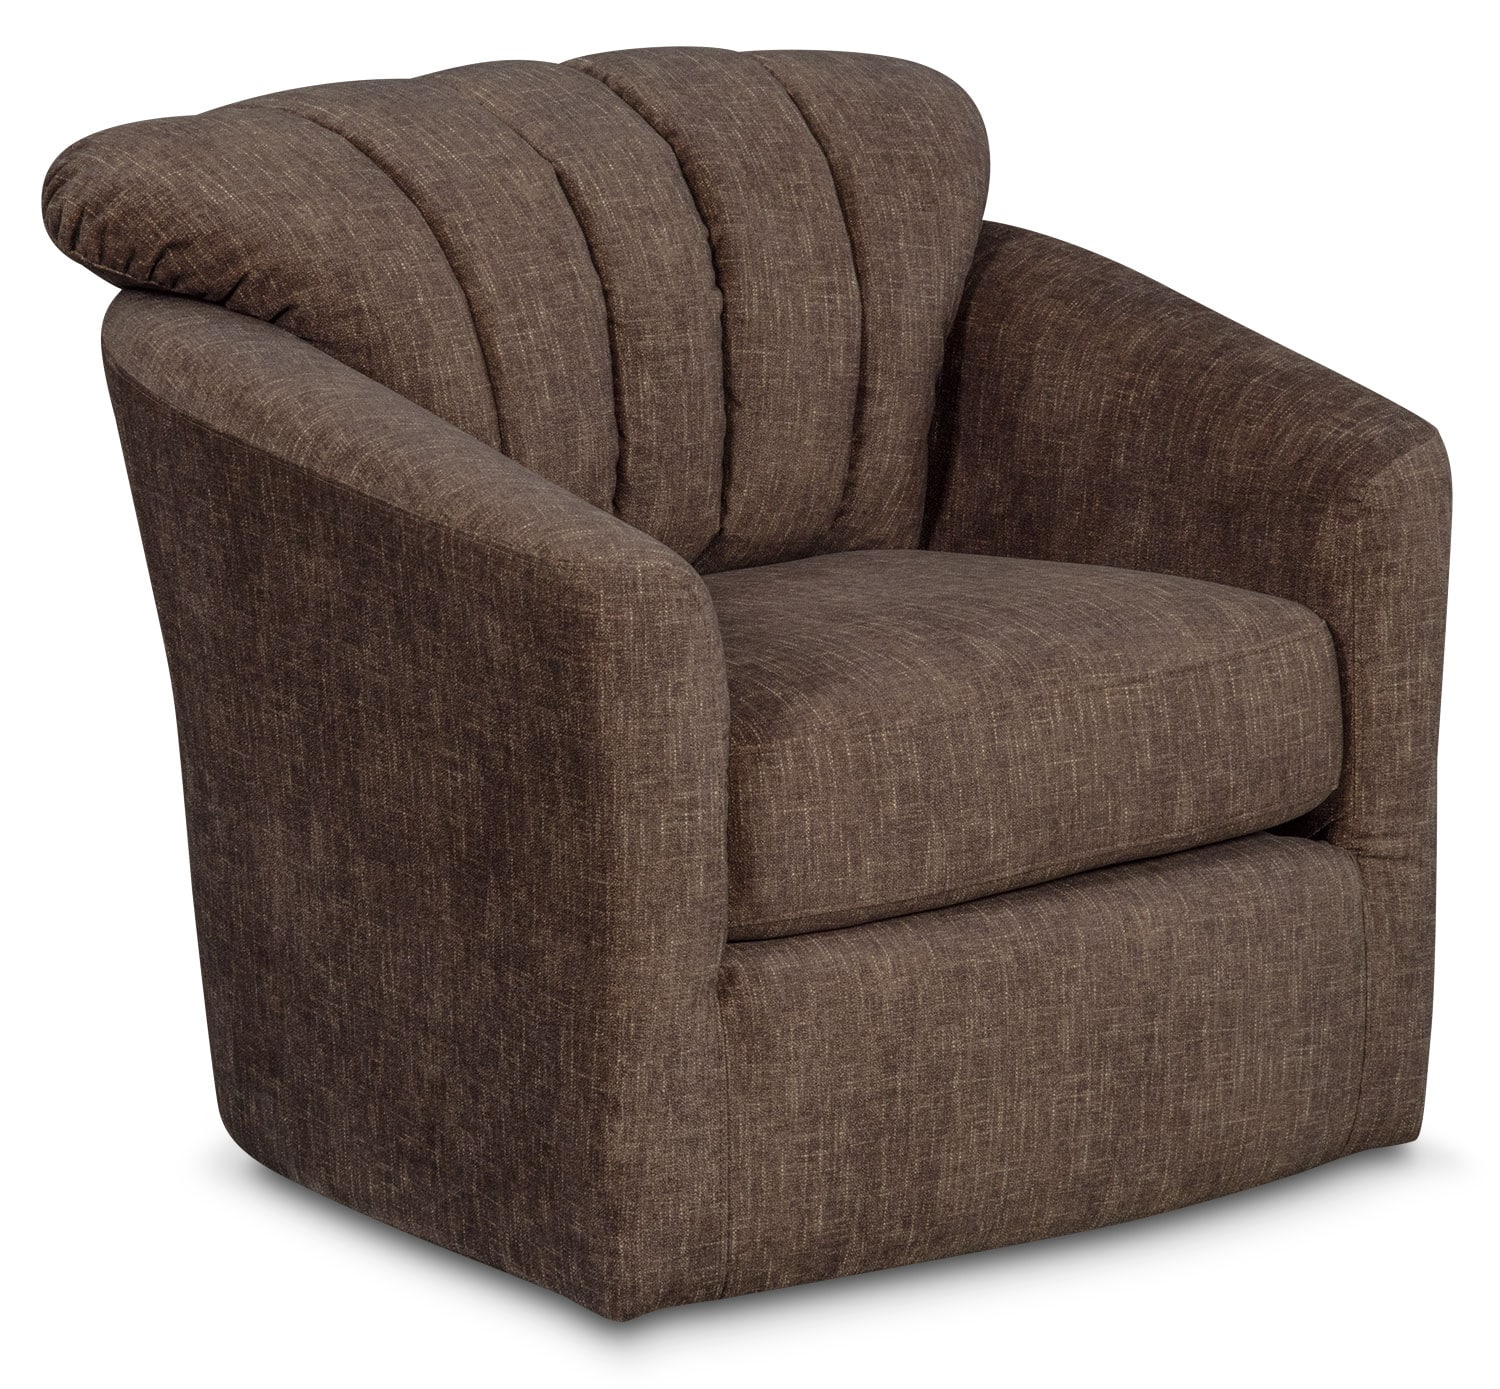 Living Room Furniture - Parker Swivel Chair - Brown